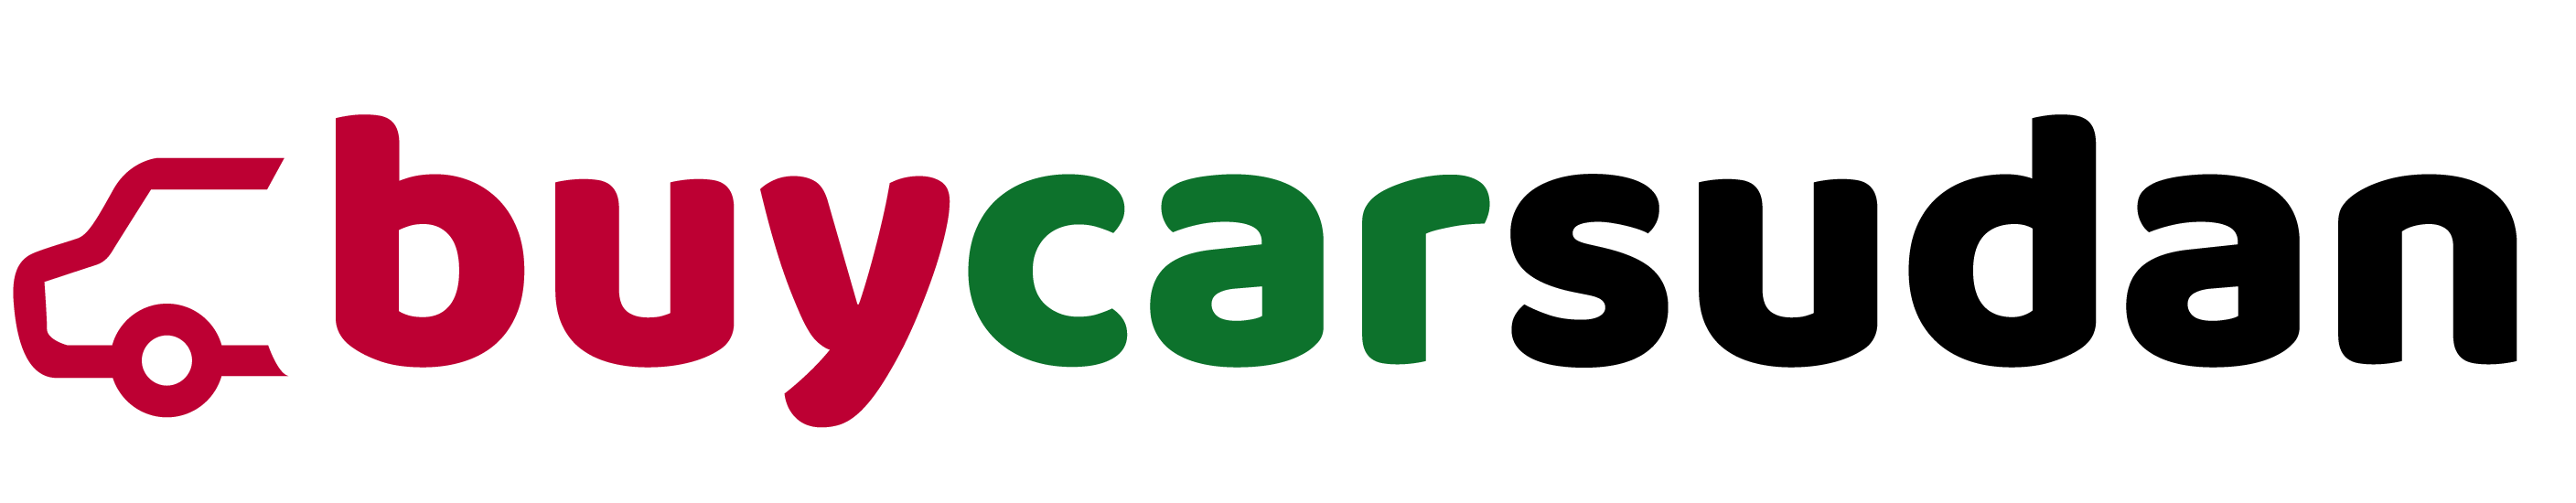 Buycarsudan logo